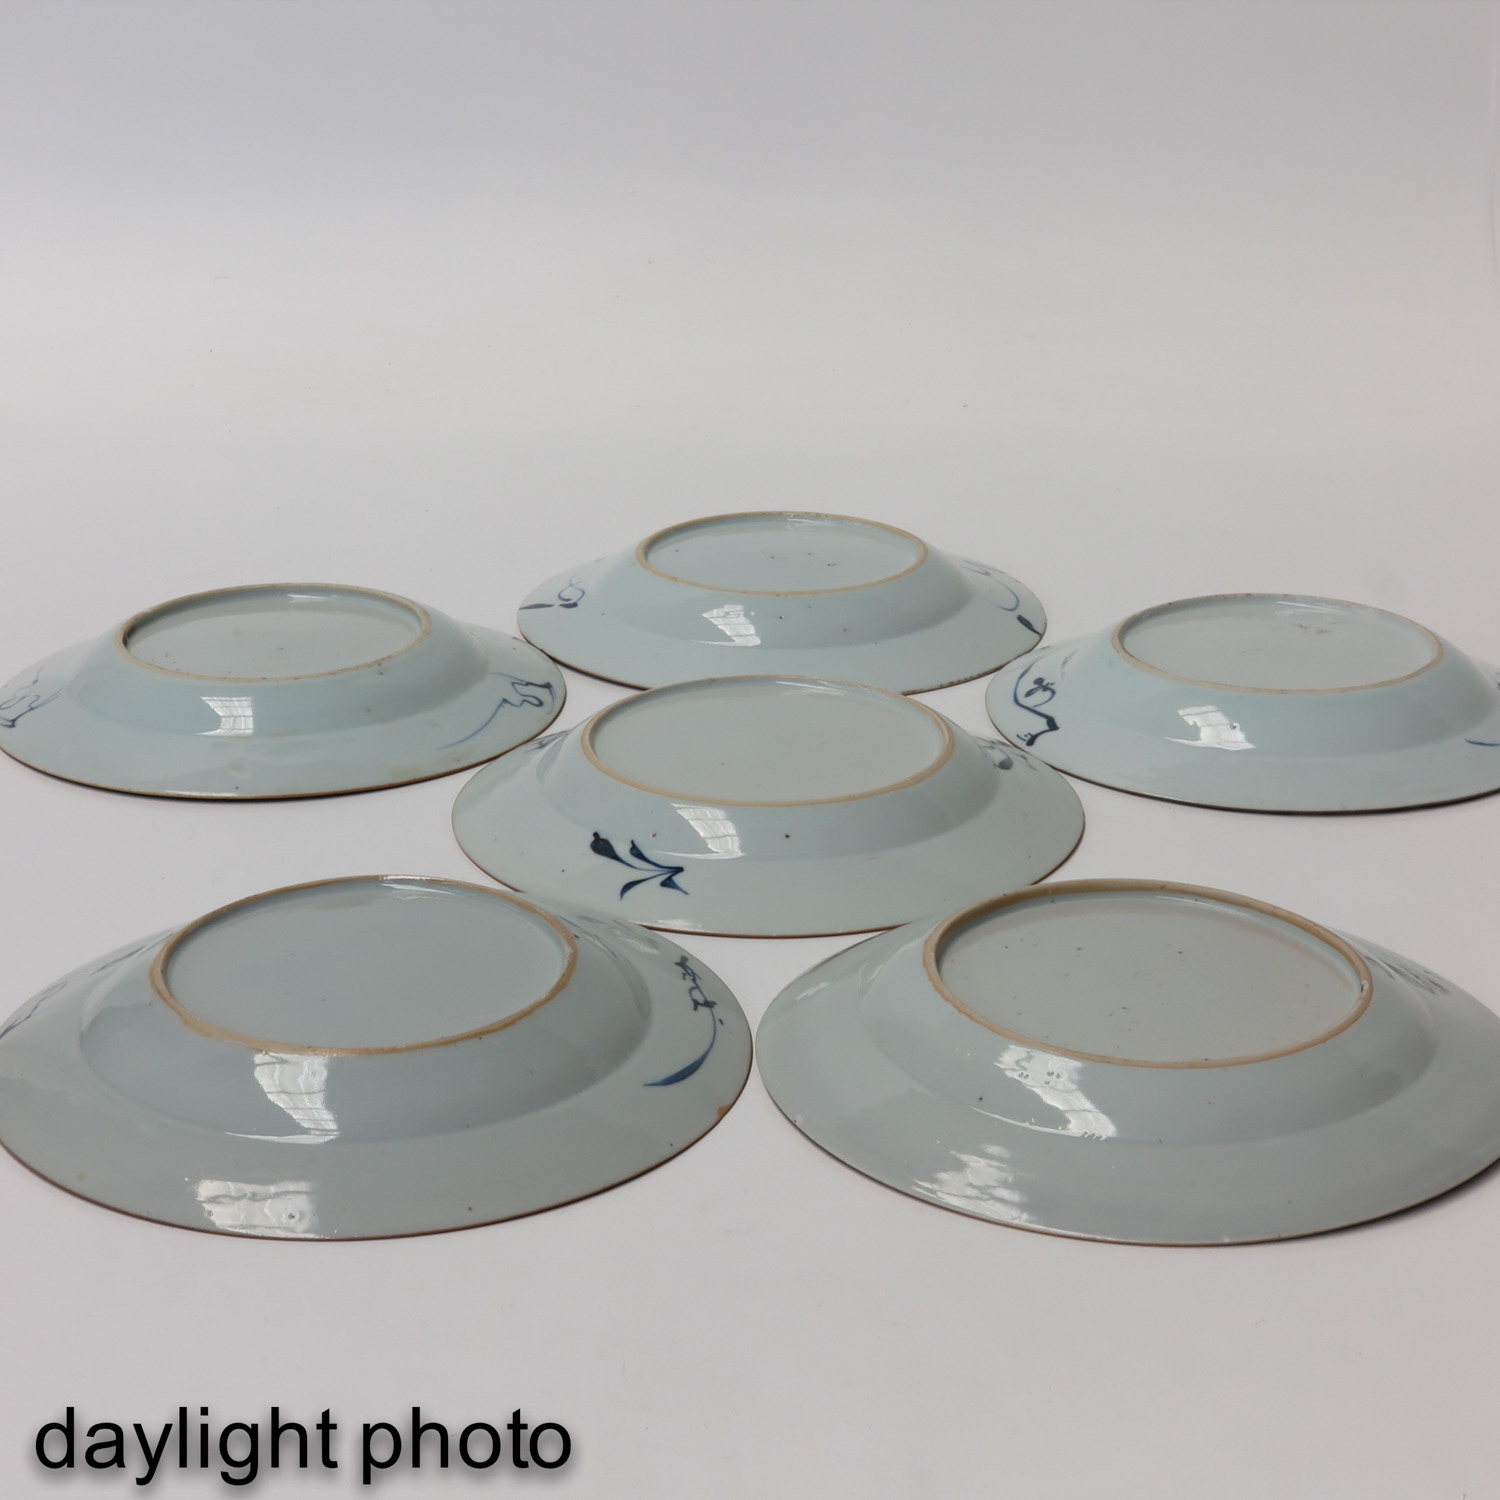 A Series of 6 Blue and White Plates - Image 10 of 10